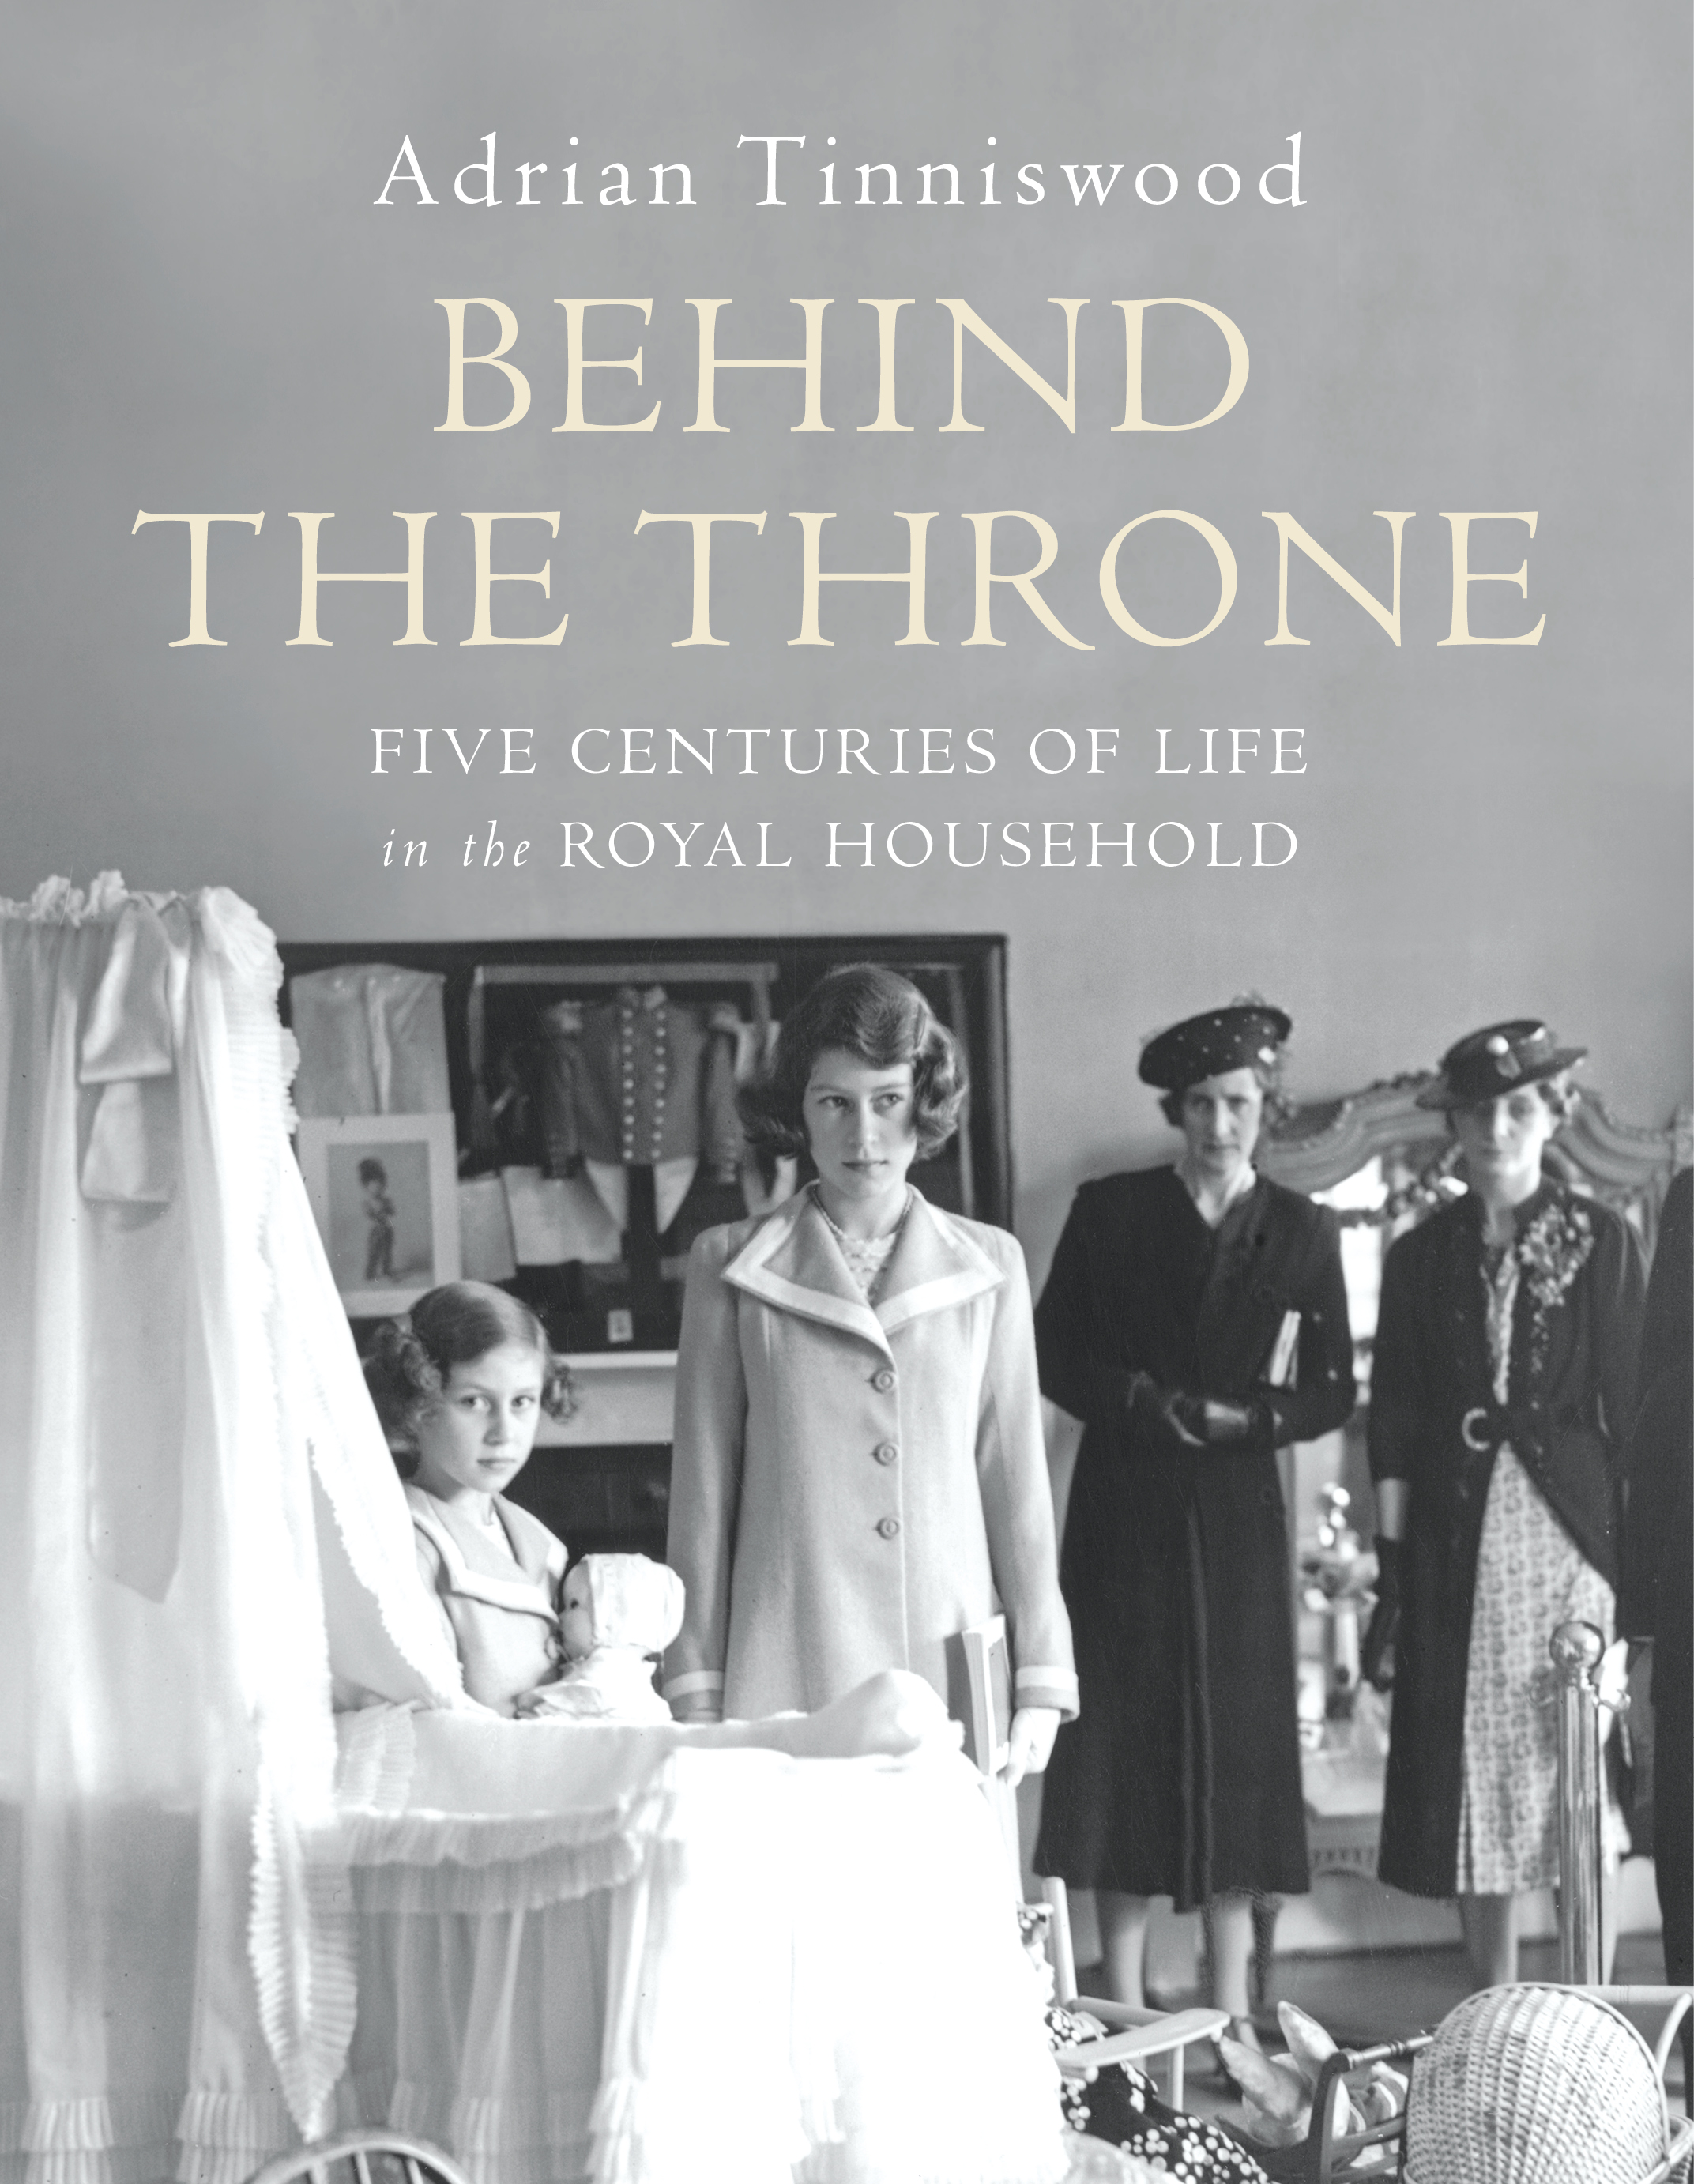 Behind the Throne: Five Centuries of Life in the Royal Household